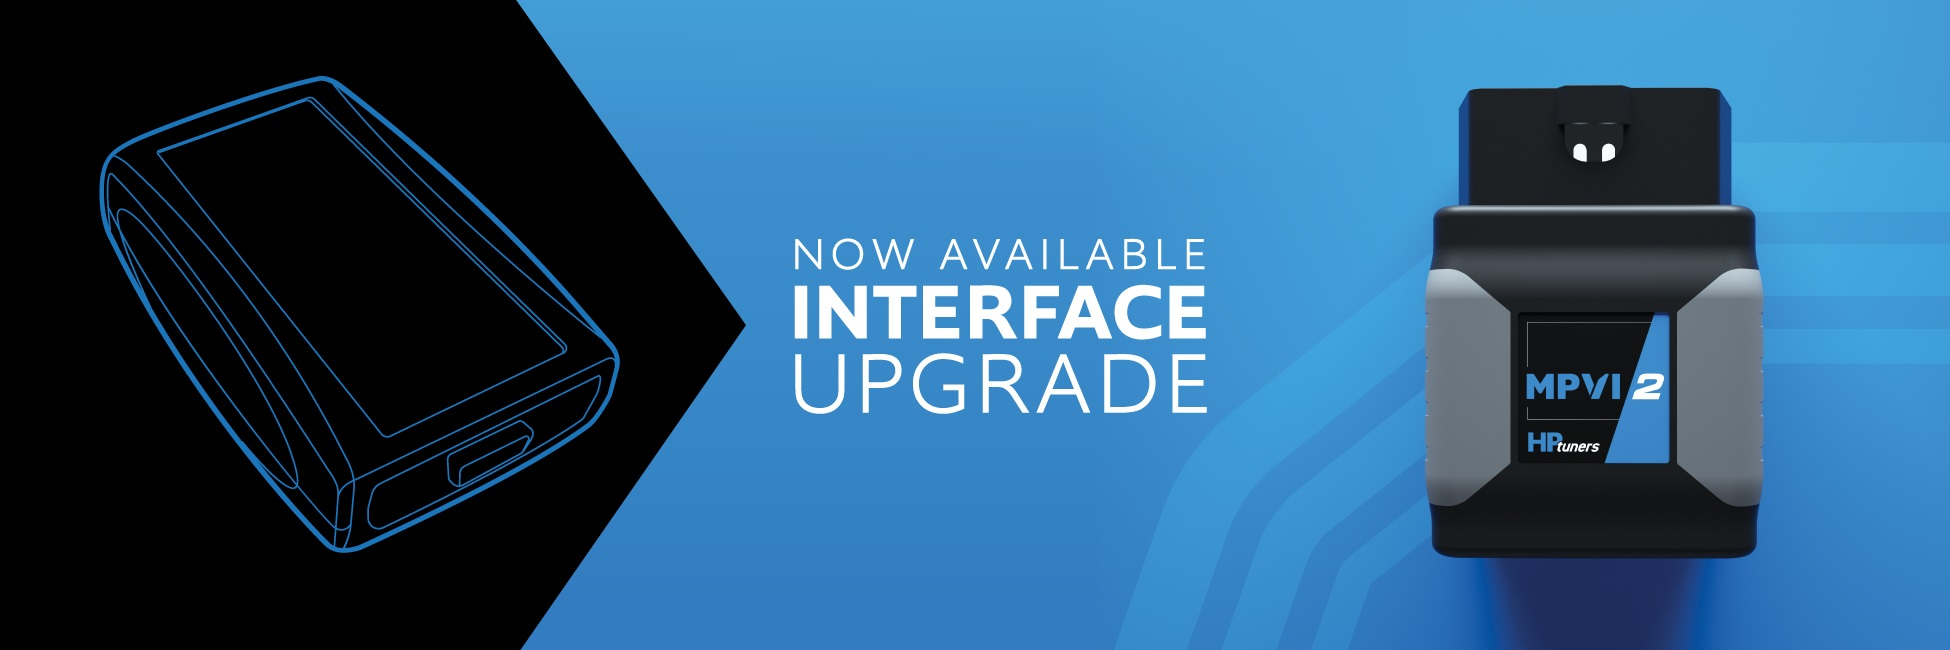 Interface Upgrade Now Available